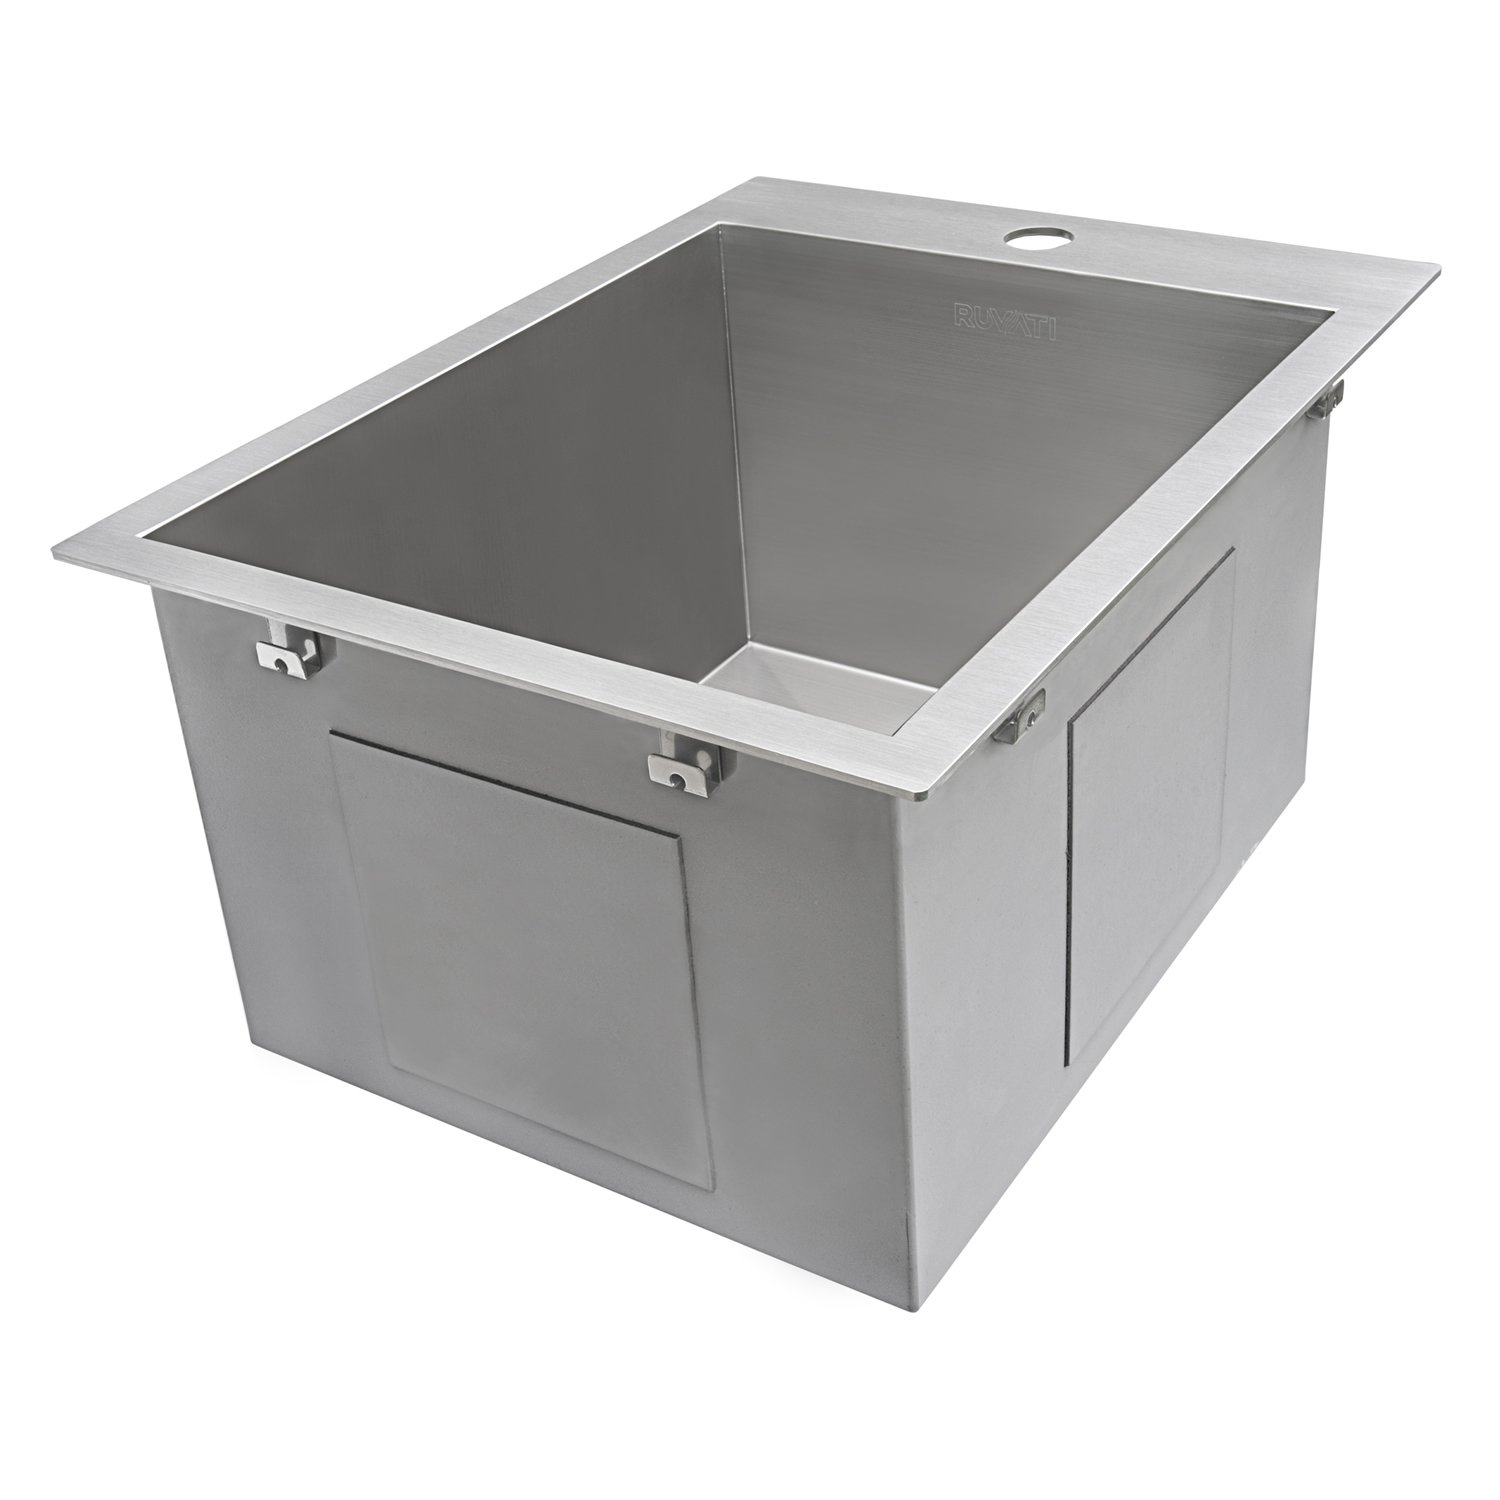 Ruvati 15 x 20 inch Drop-in Topmount Bar Prep Sink 16 Gauge Stainless Steel Single Bowl - RVH8110 by Ruvati (Image #6)